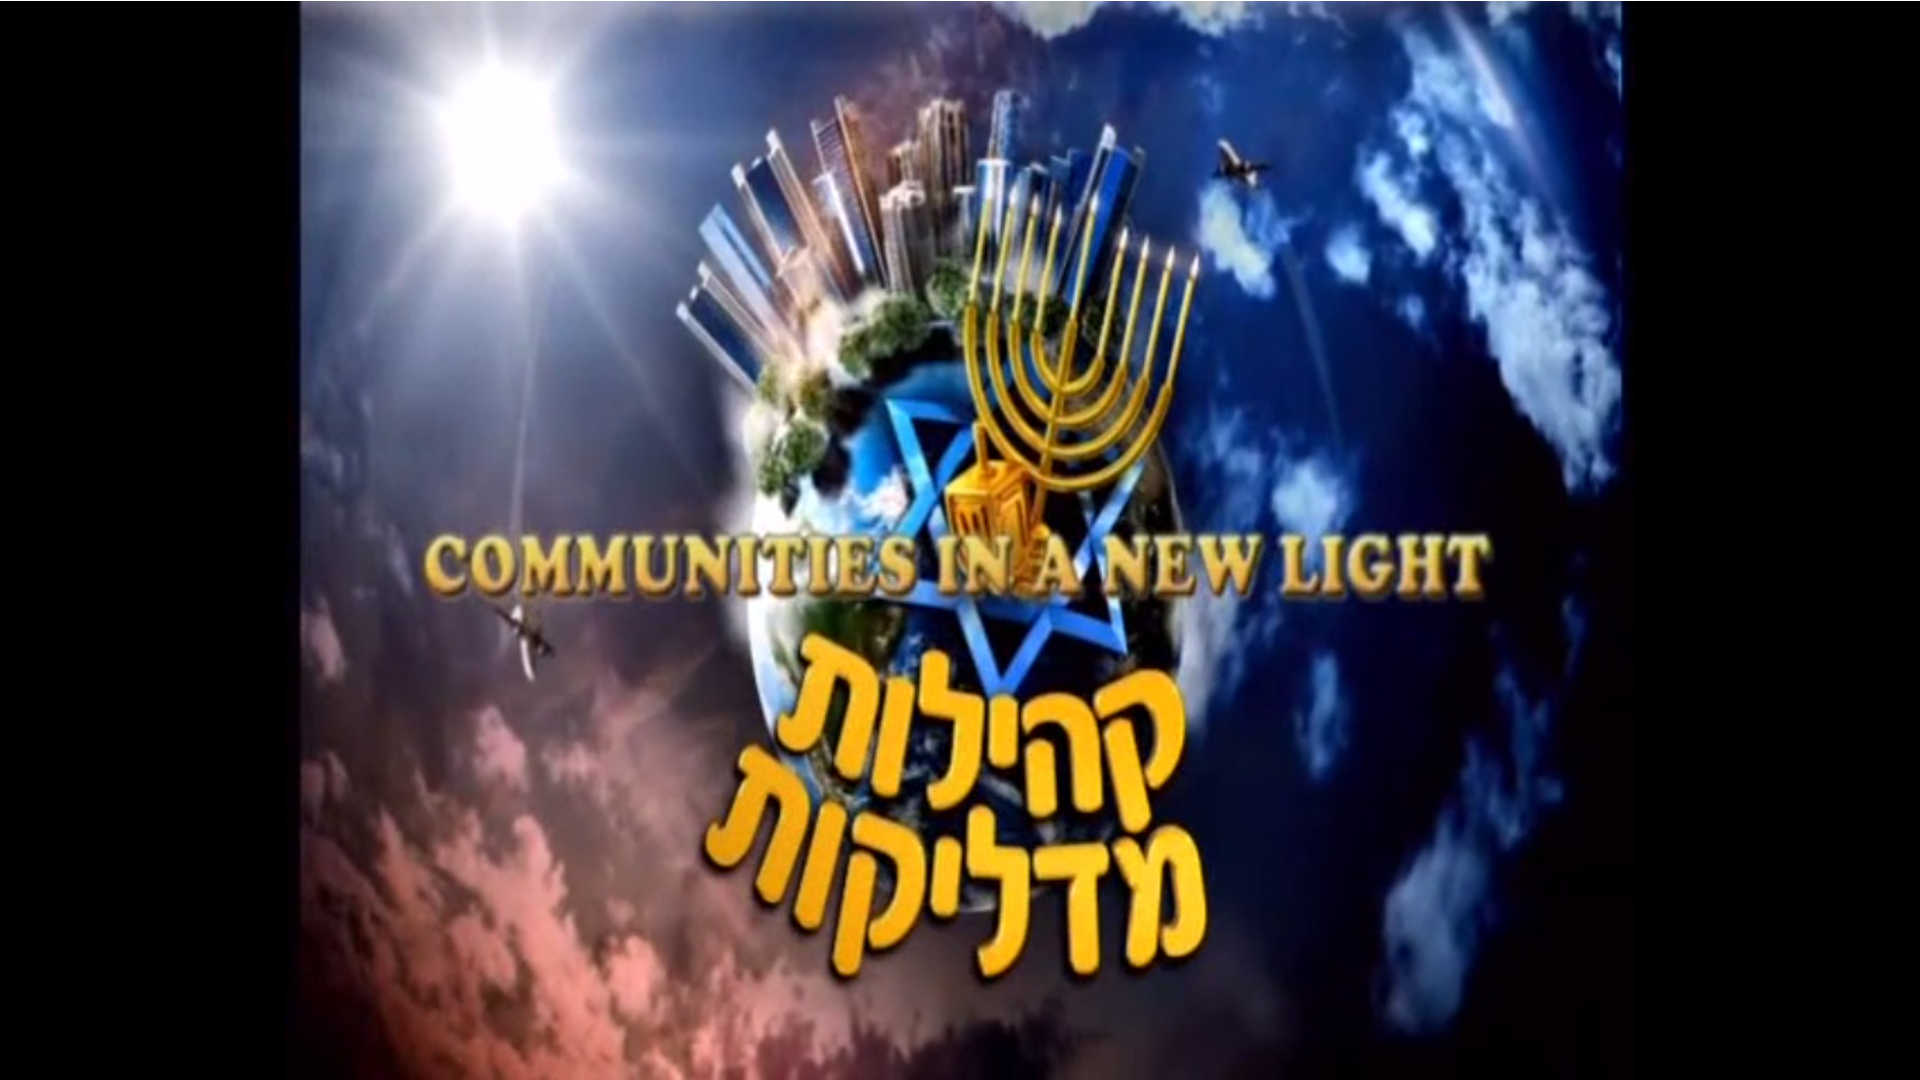 Watch Full Movie - Communities in a New Light - Oslo